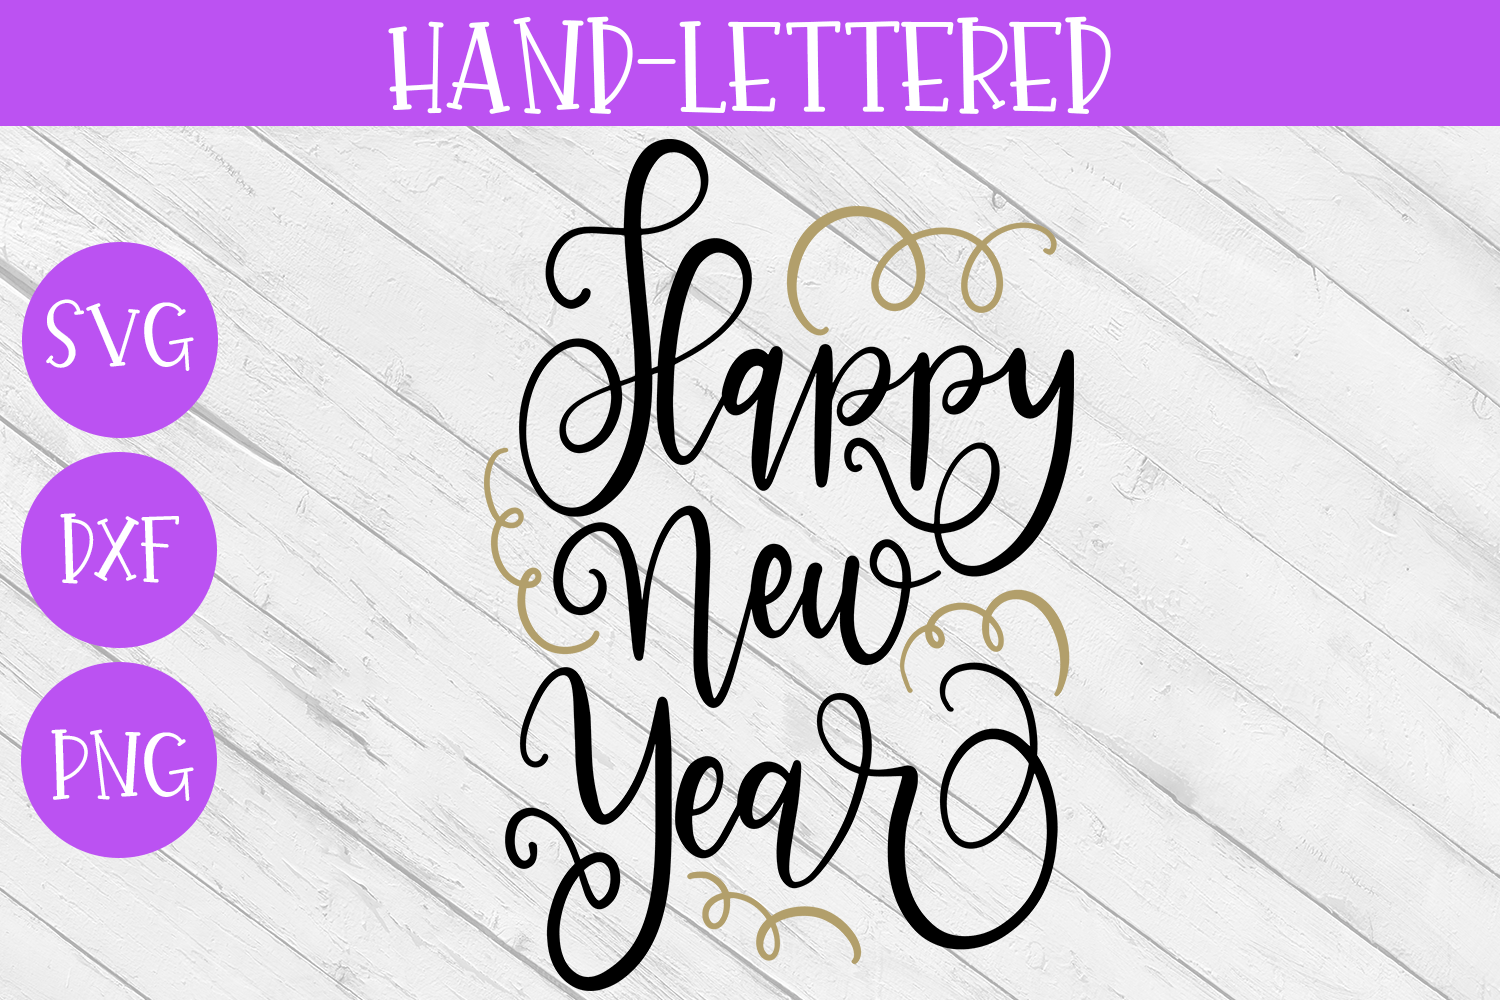 New Year SVG - Happy New Year Hand-Lettered Cut File example image 2